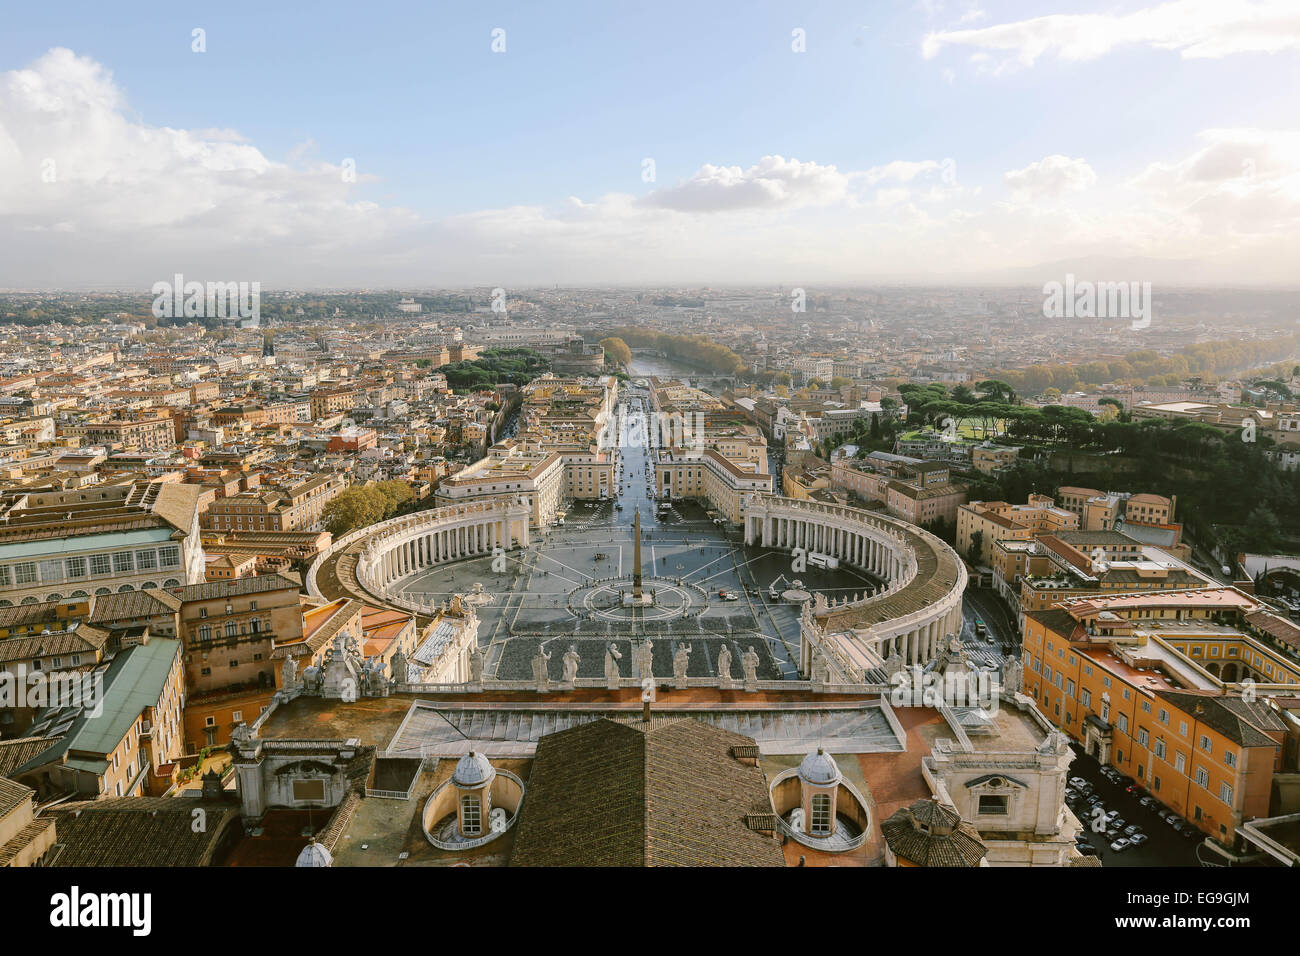 Italy, Rome, Vatican, Vatican City, St. Peter's Square, Elevated view of St. Peter's Square and horizon over city Stock Photo